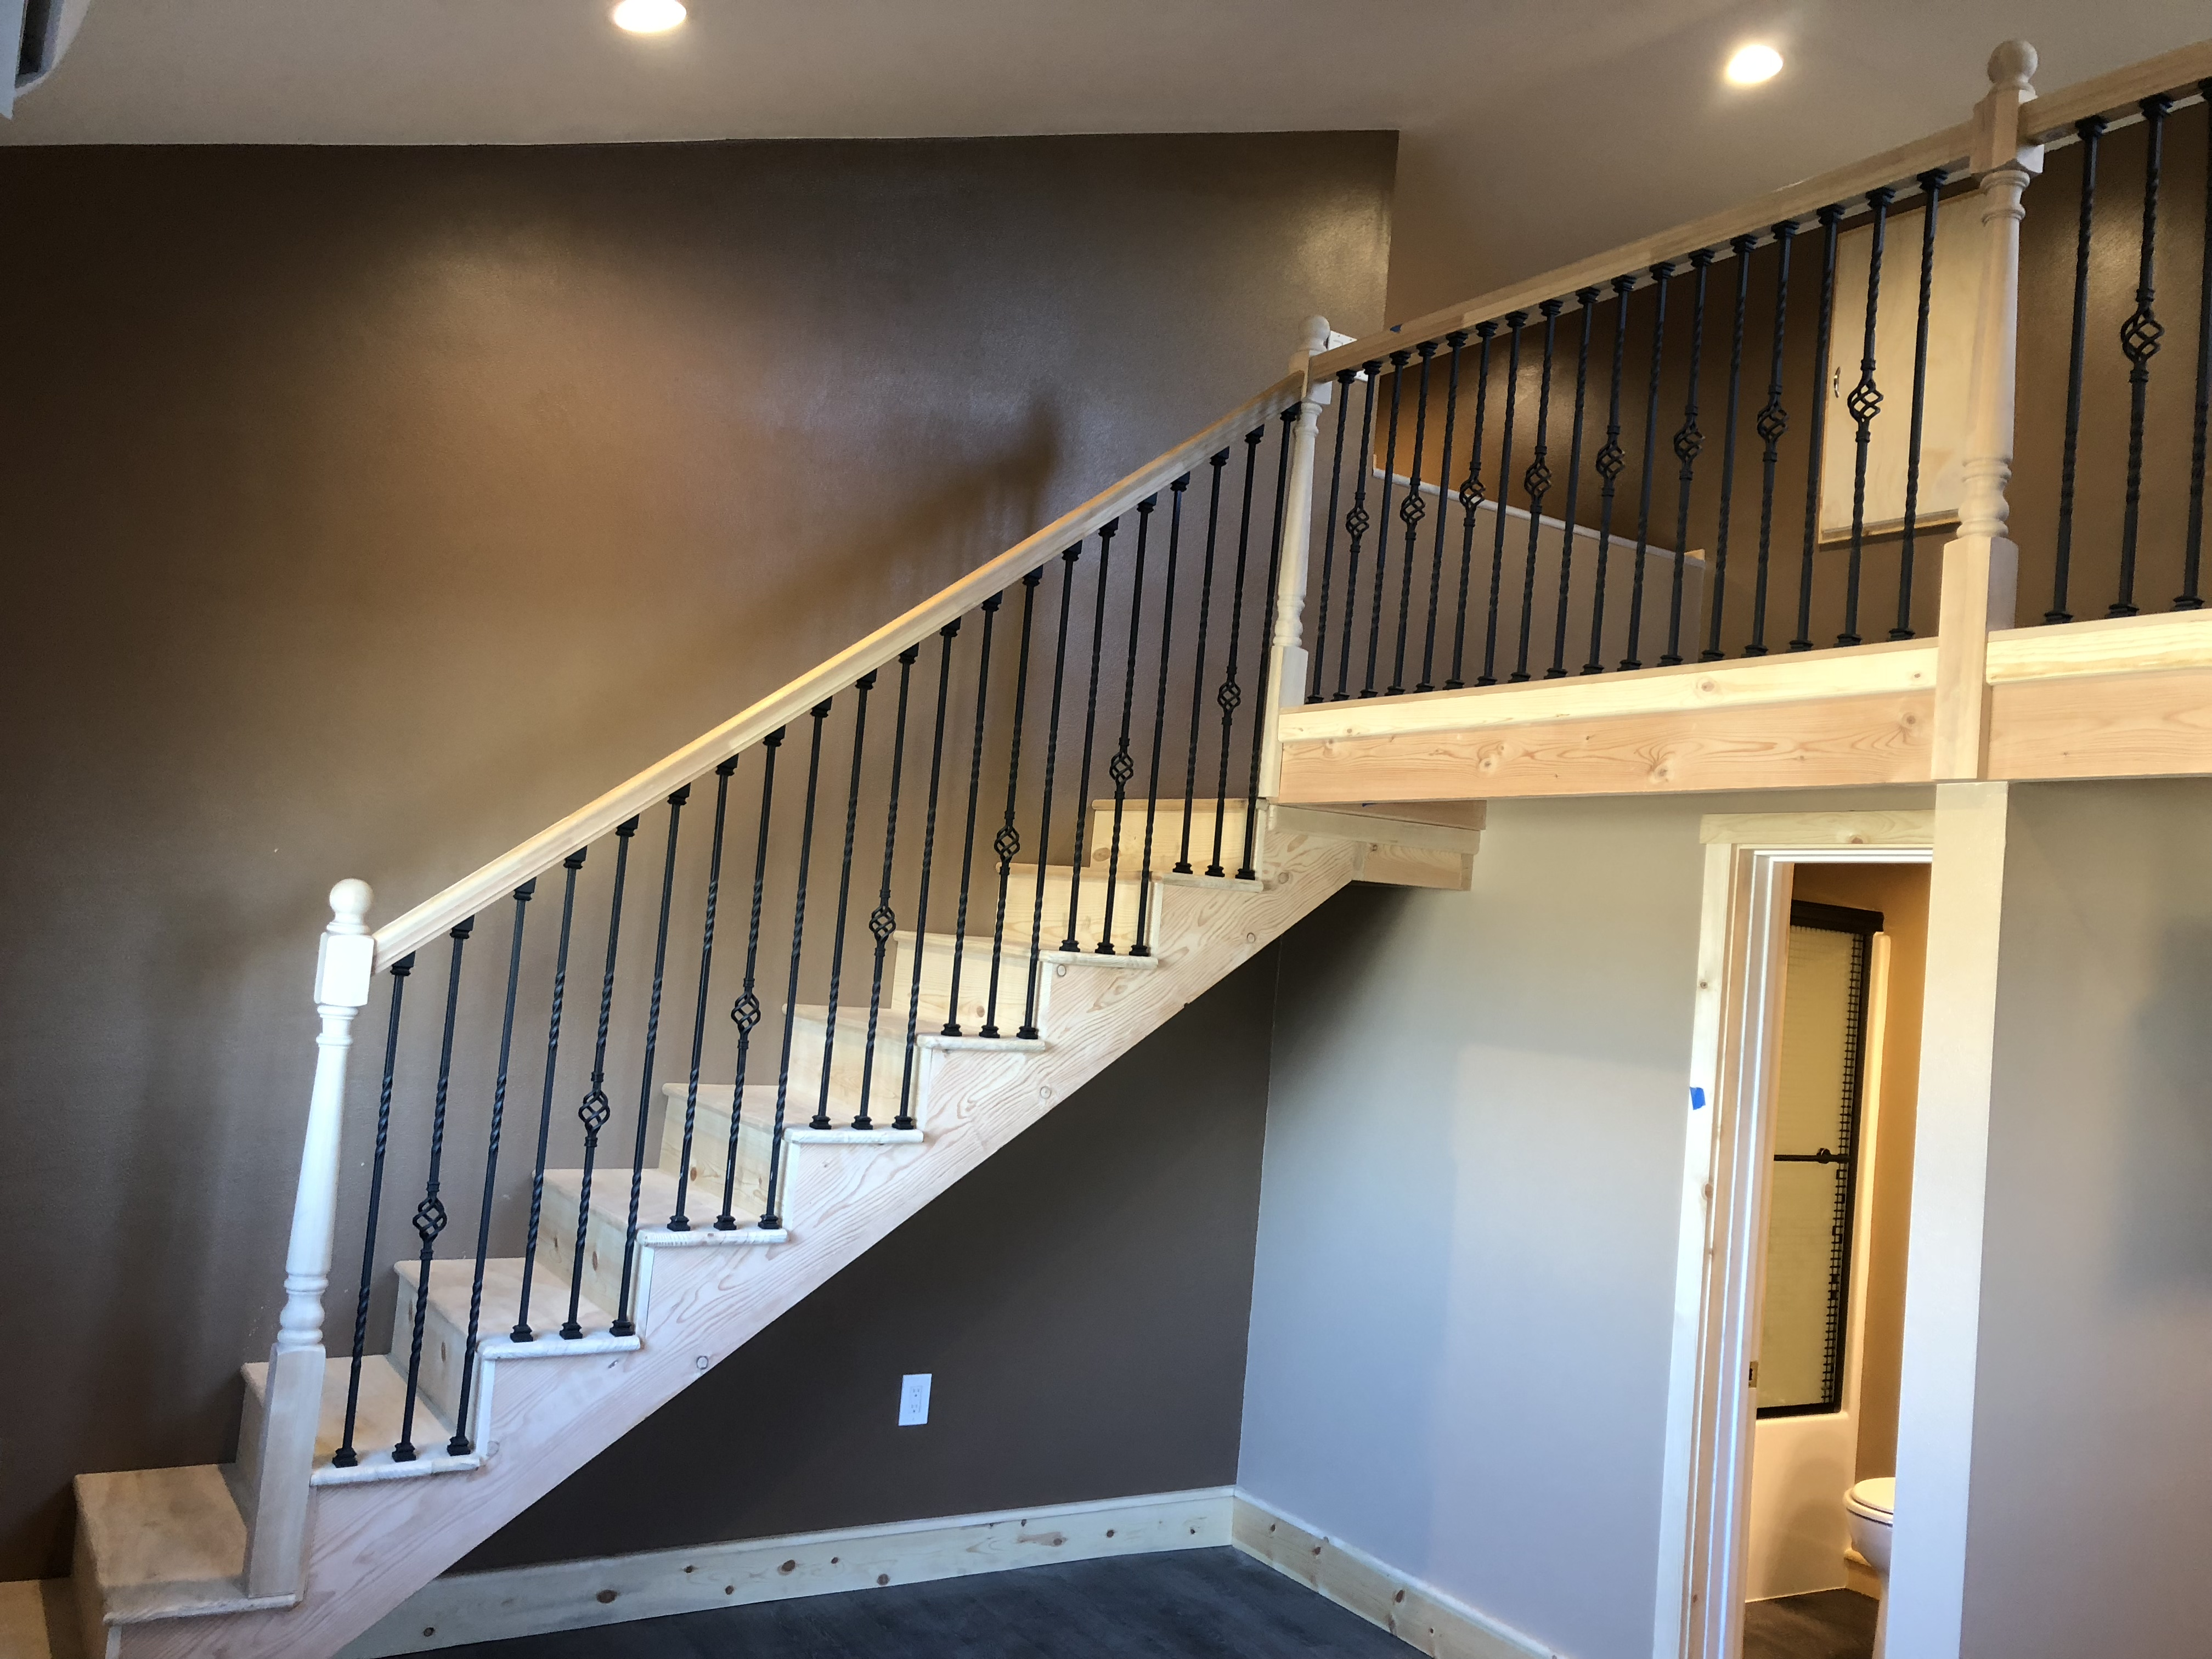 A1 Remodeling & Construction | The Dalles OR | Get a Bid | BuildZoom